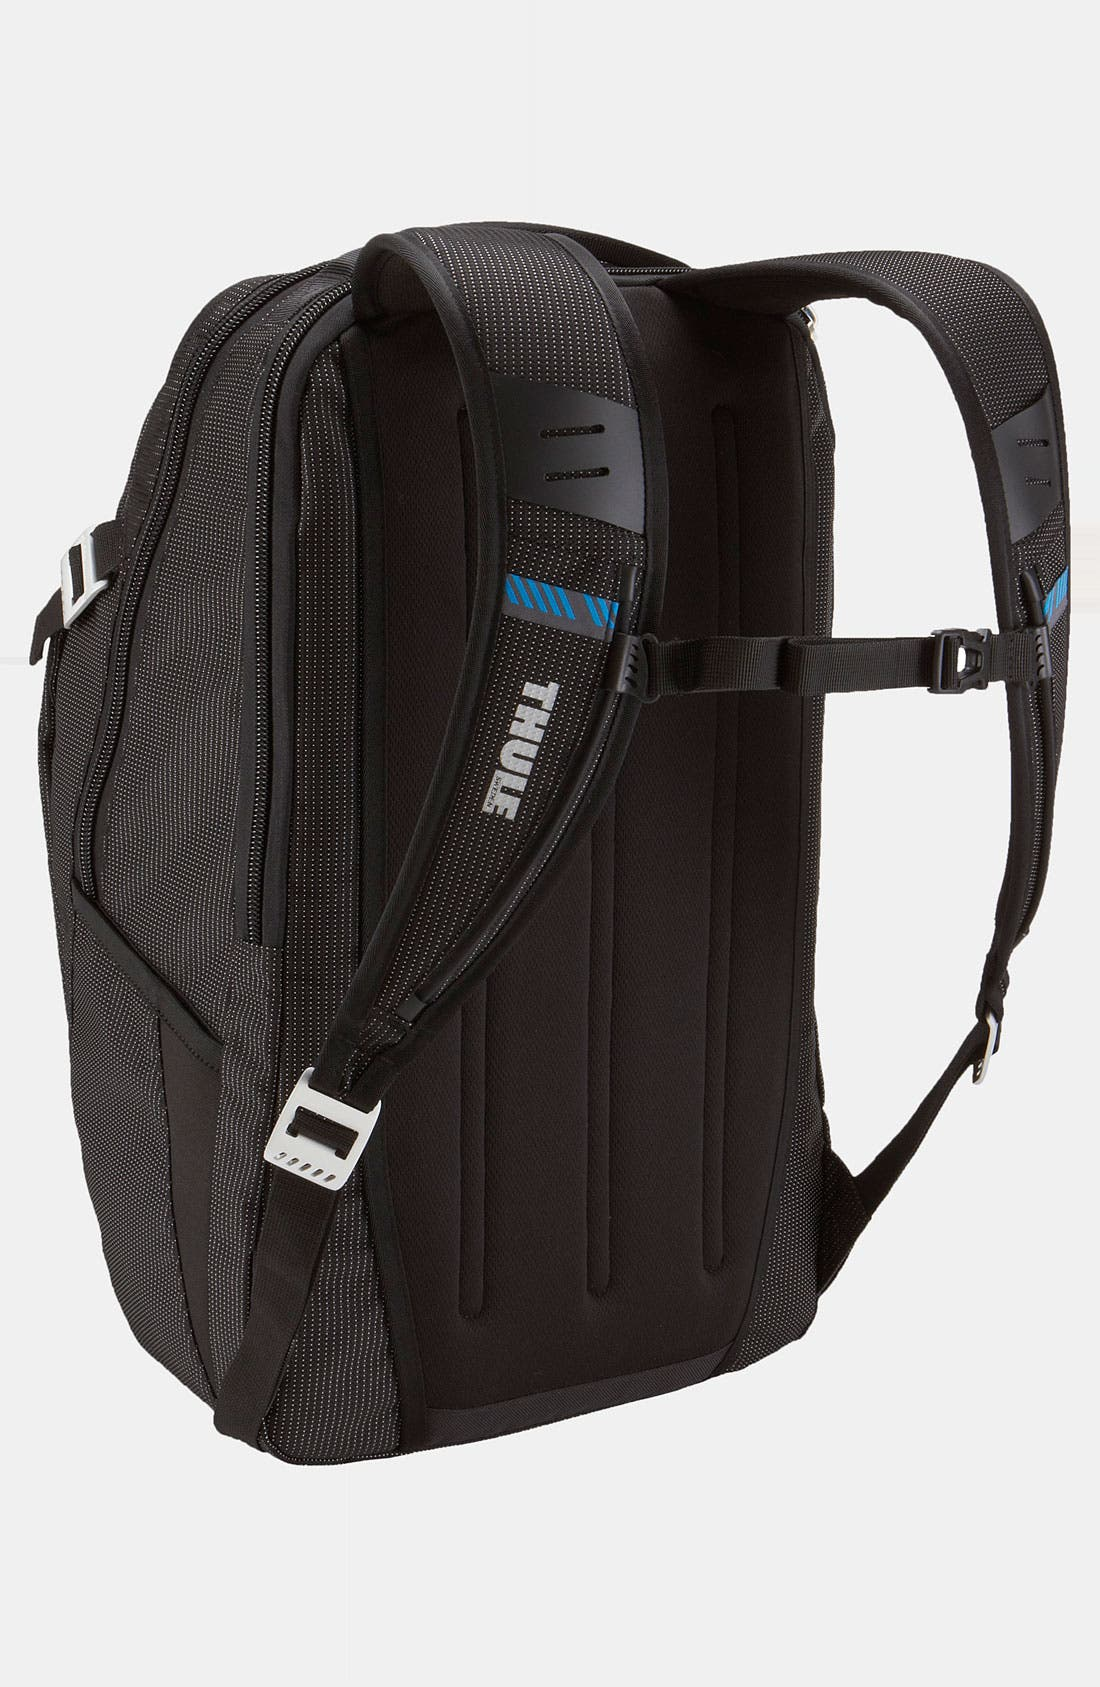 32-Liter Crossover Backpack,                             Alternate thumbnail 2, color,                             Black